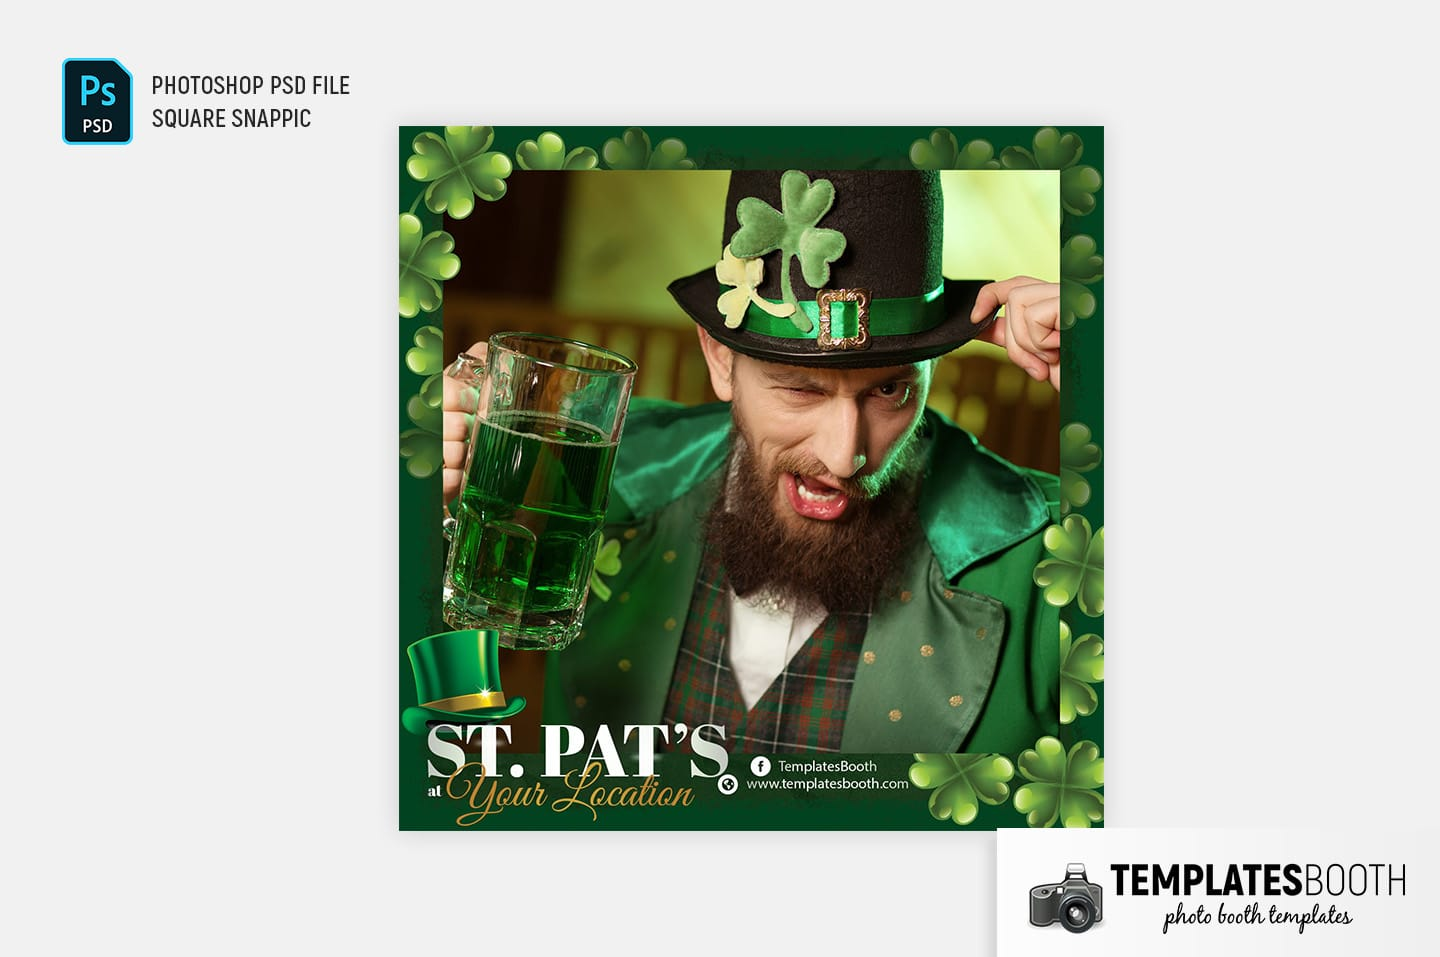 Saint Patrick's Day Photo Booth Template (for Snappic)